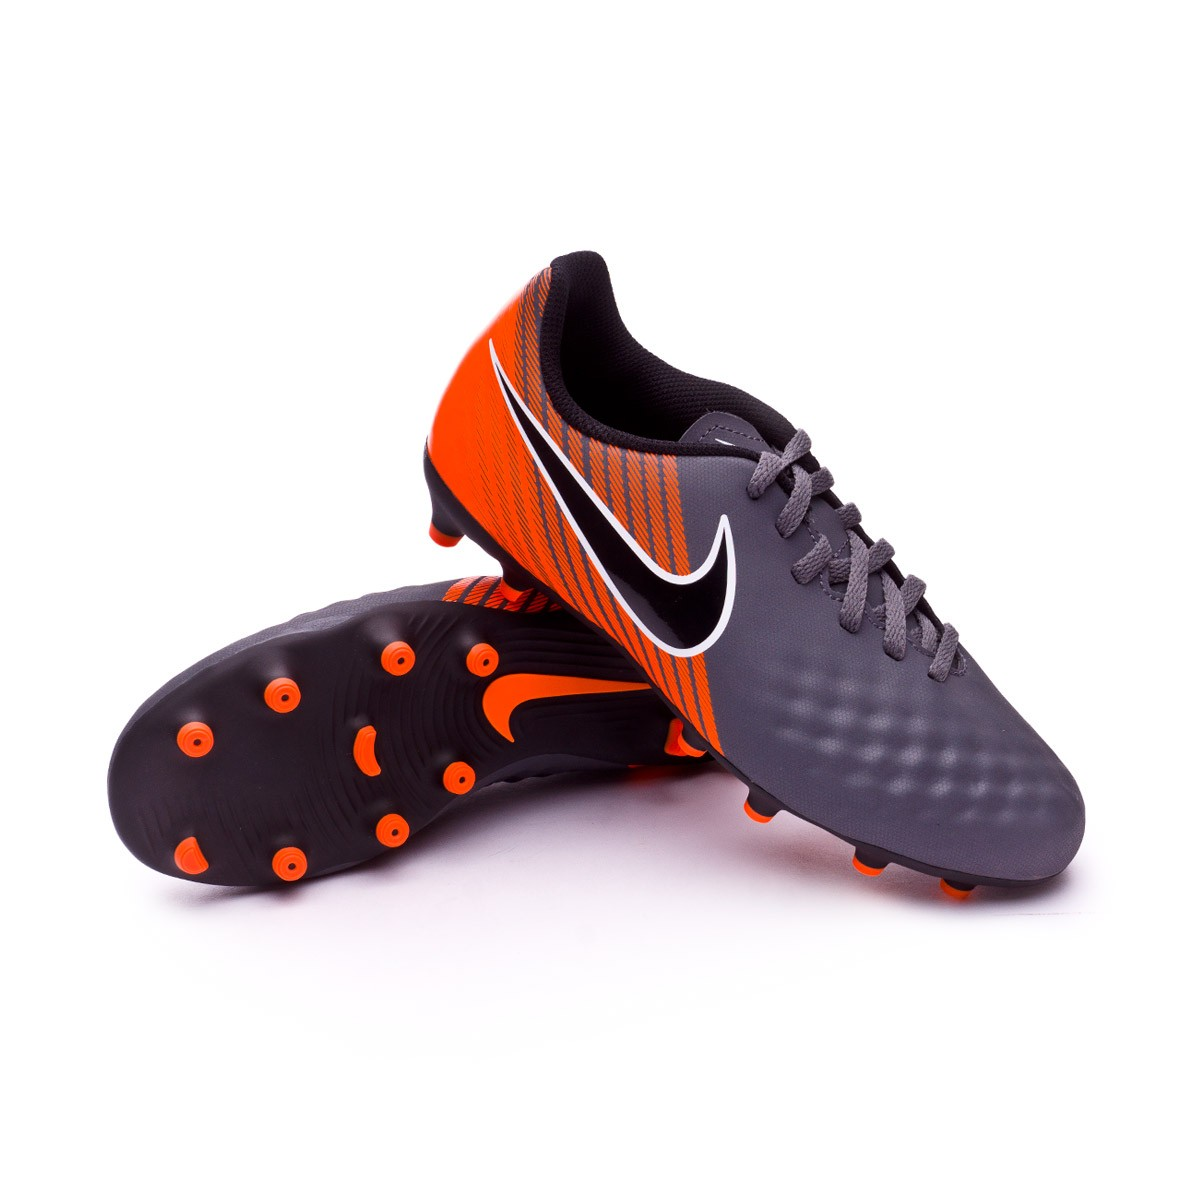 8e83a114fe8 Nike Kids Magista Obra II Club FG Boot. Dark grey-Black-Total orange-White  ...